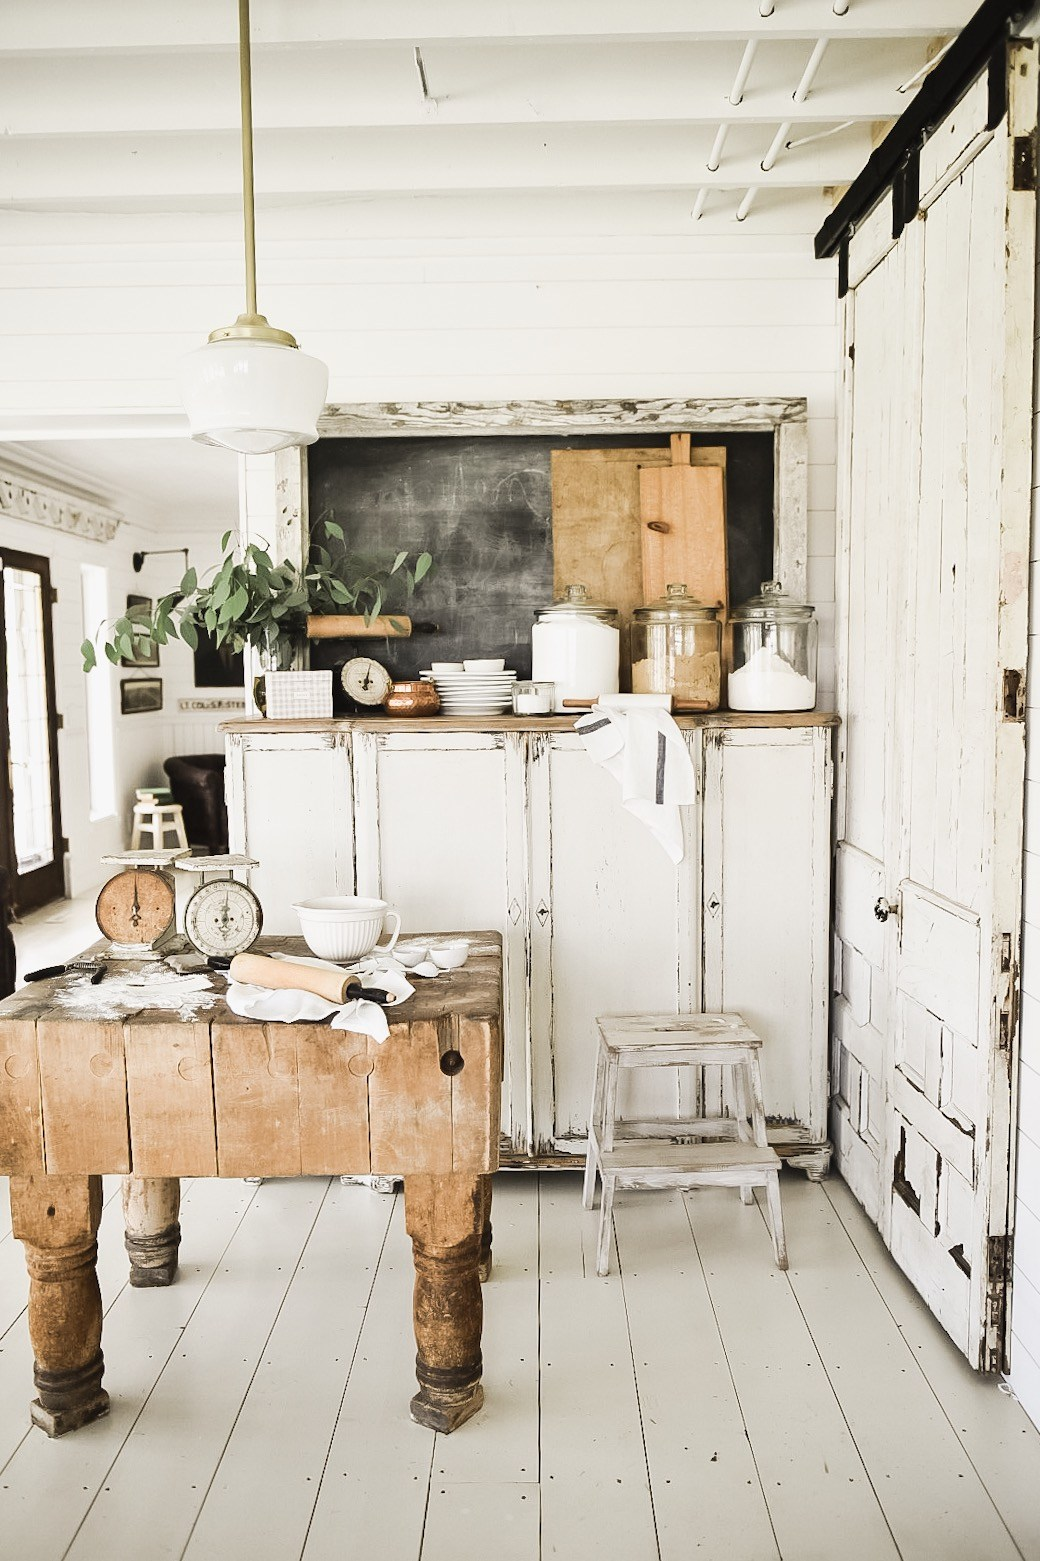 The rustic and weathered wood and sliding barnwood door gives this farmhouse style kitchen a genuine look